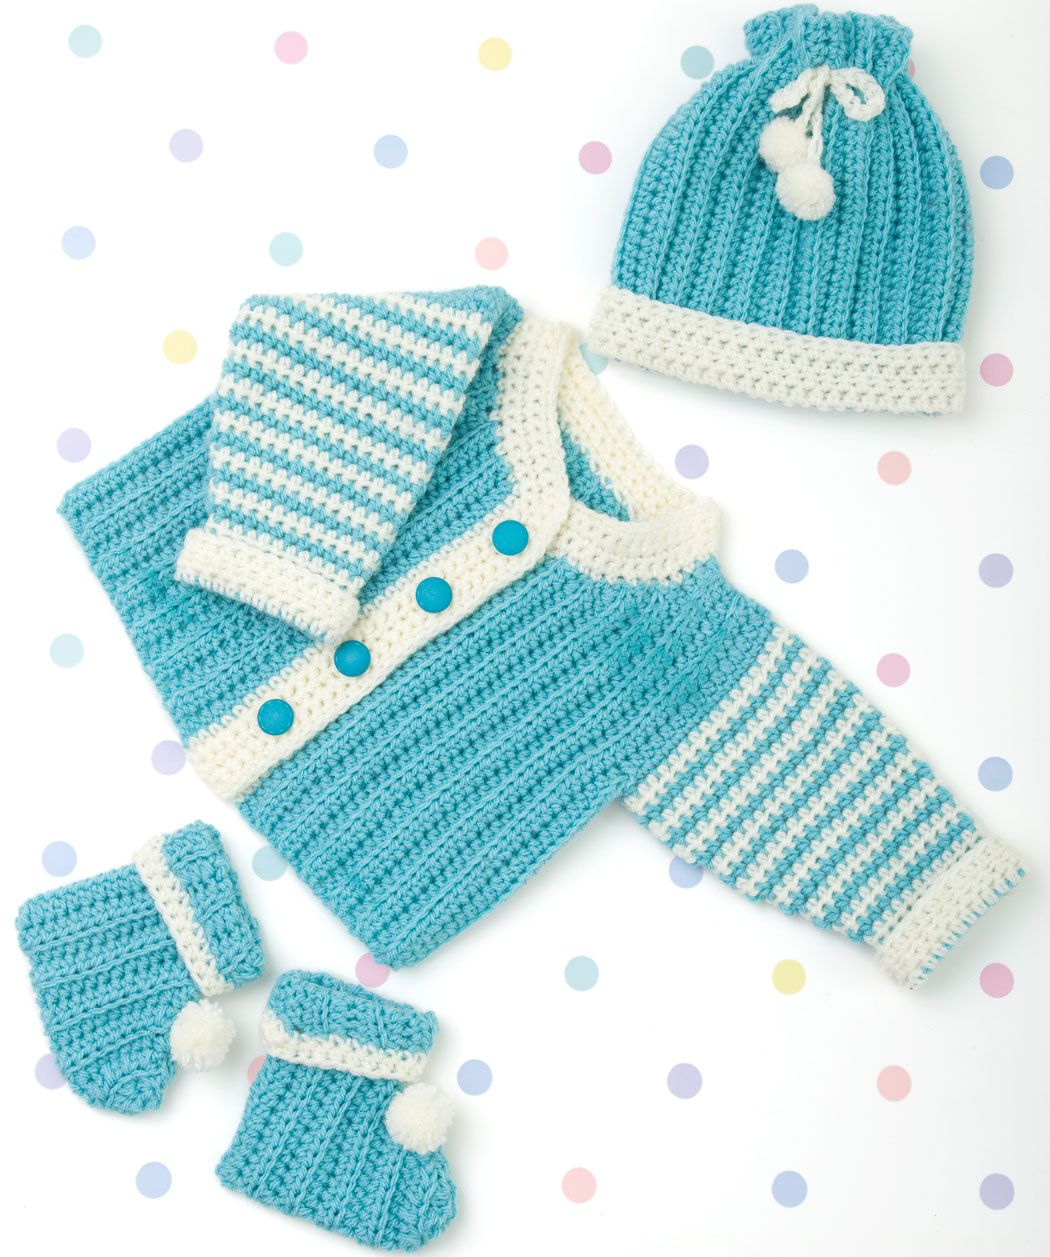 20 free amazing crochet and knitting patterns for cozy baby 20 free amazing crochet and knitting patterns for cozy baby clothes bankloansurffo Choice Image